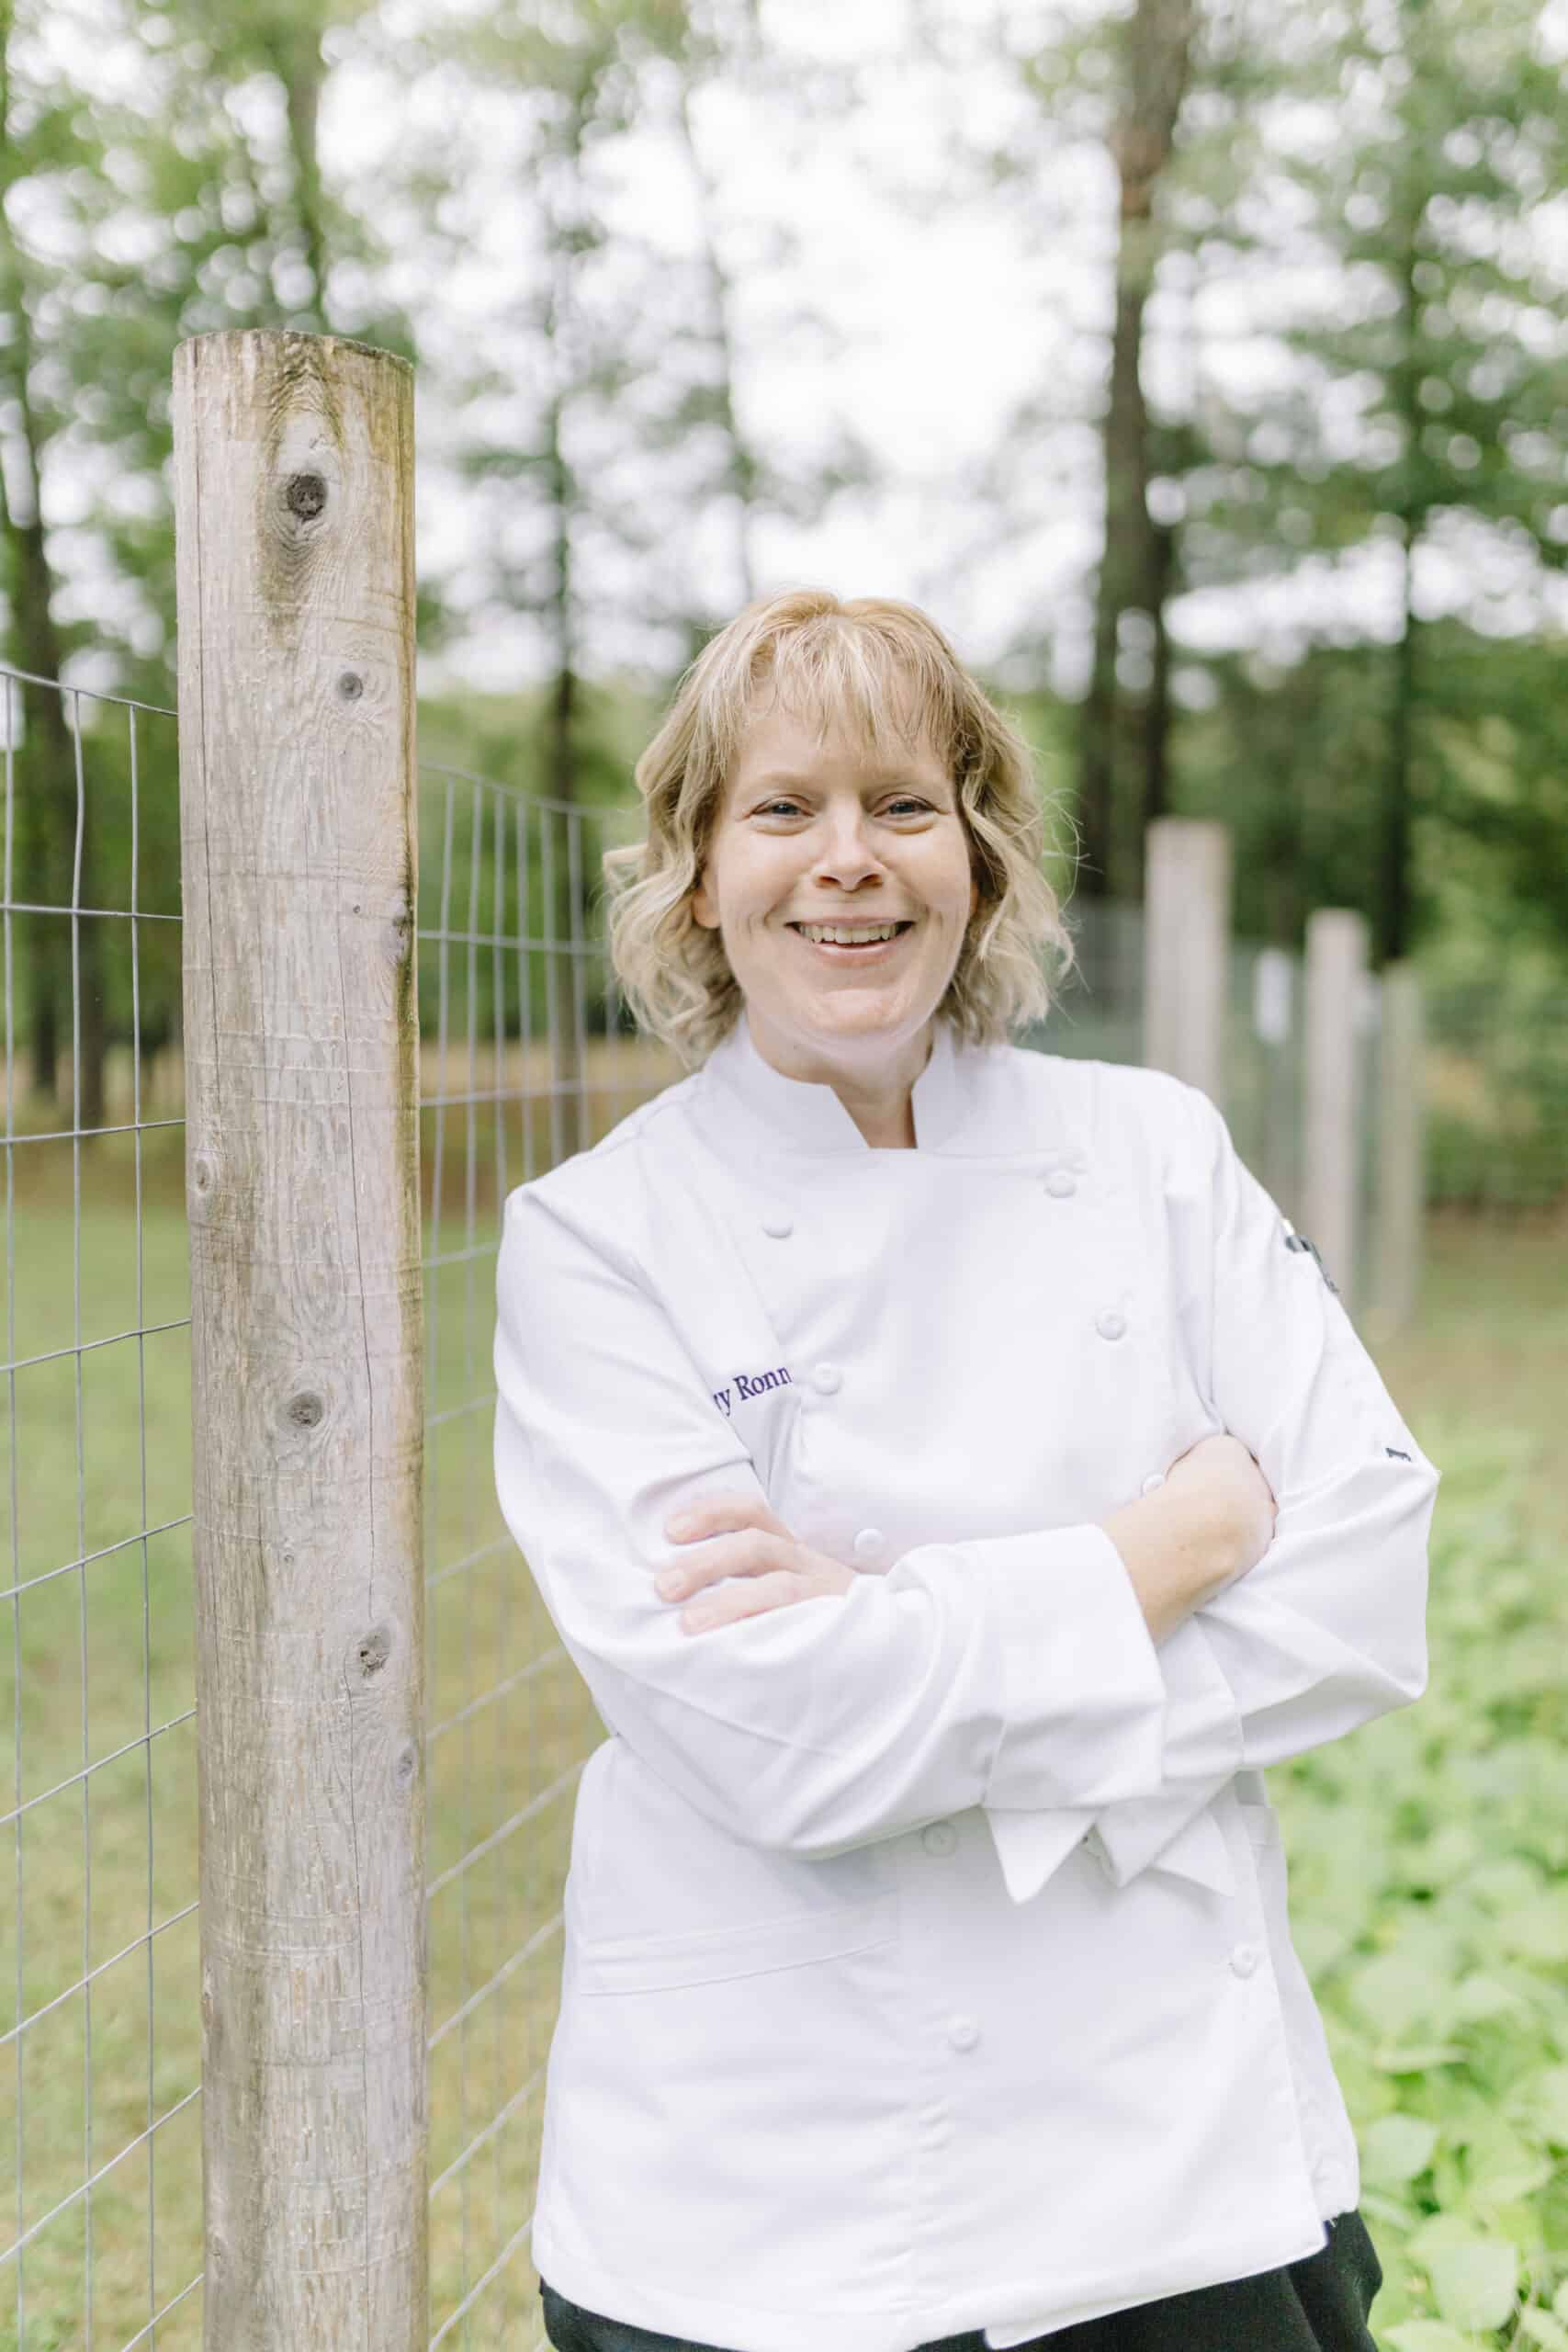 Sherry Ronning in a chef coat standing up against a garden fence.